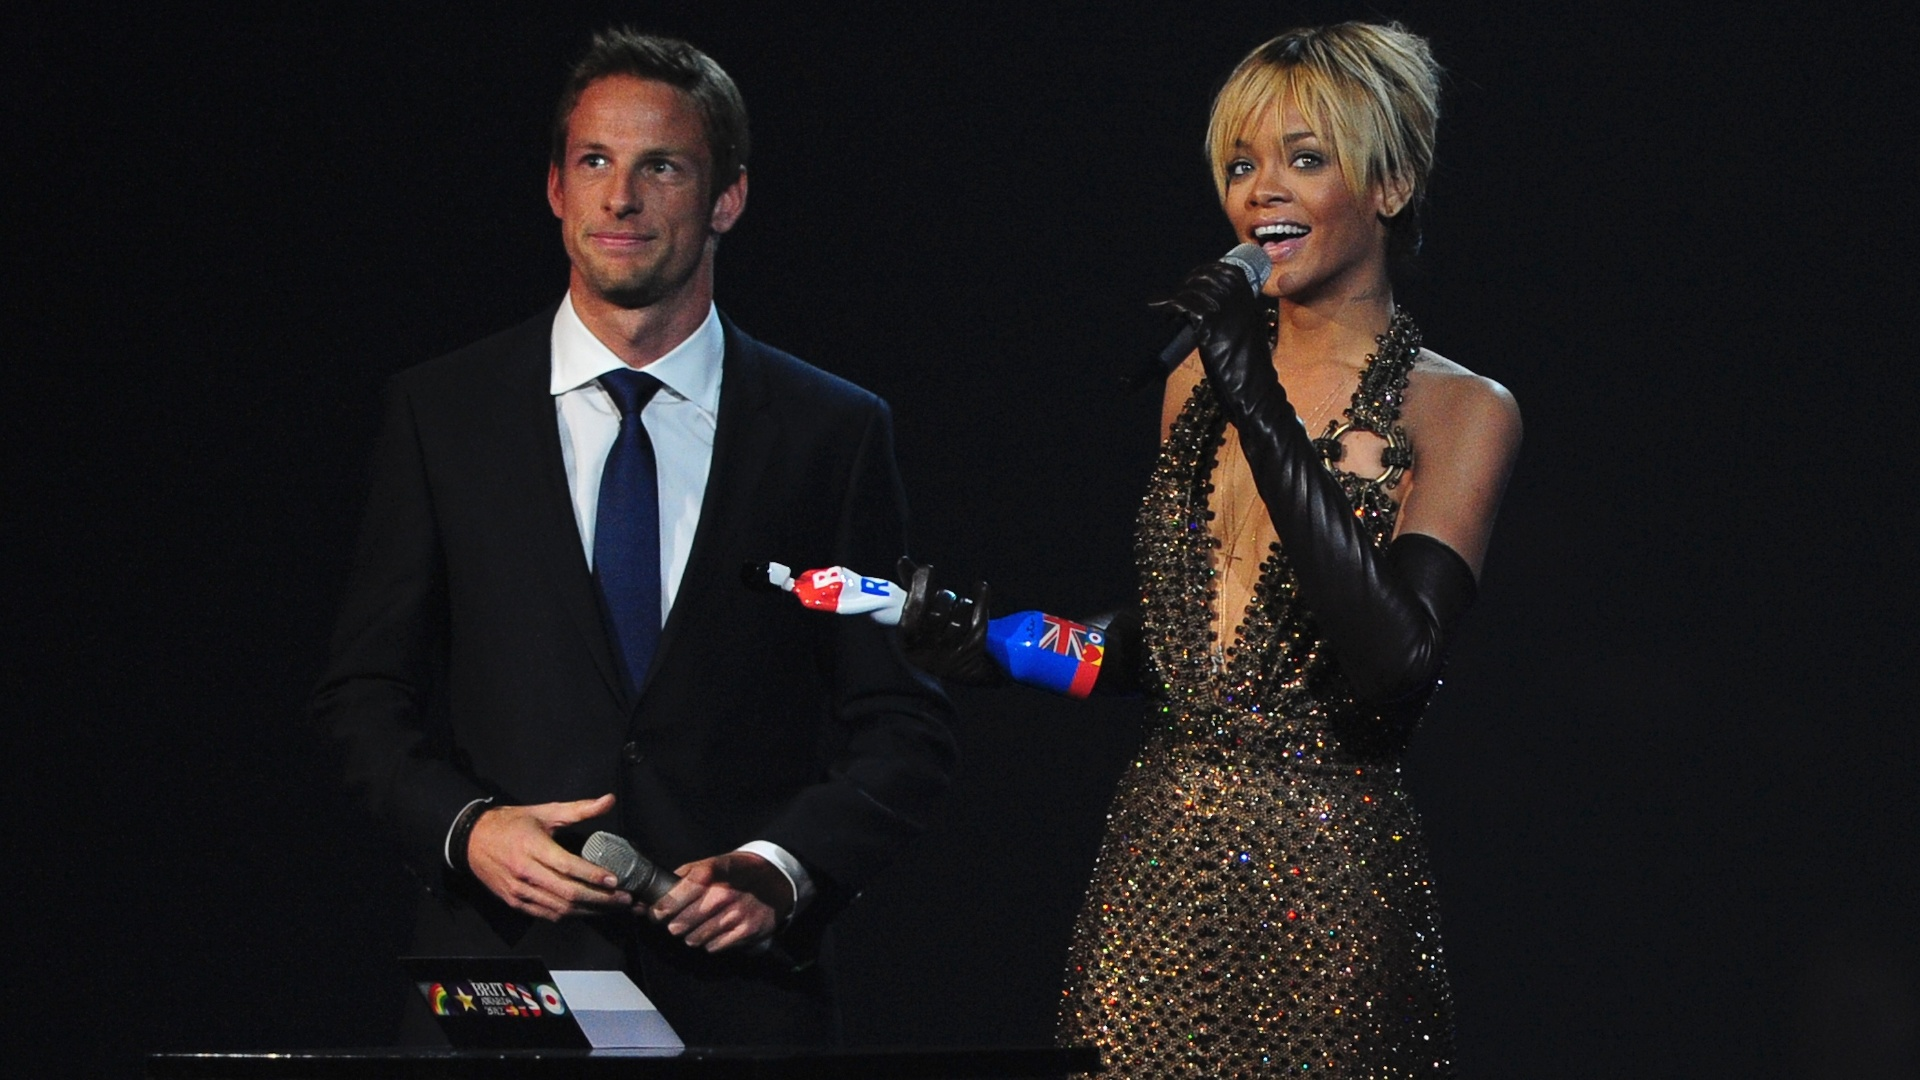 Rihanna recebe prmio das mos do piloto Jenson Button durante o Brit Awards (21/02/2012)